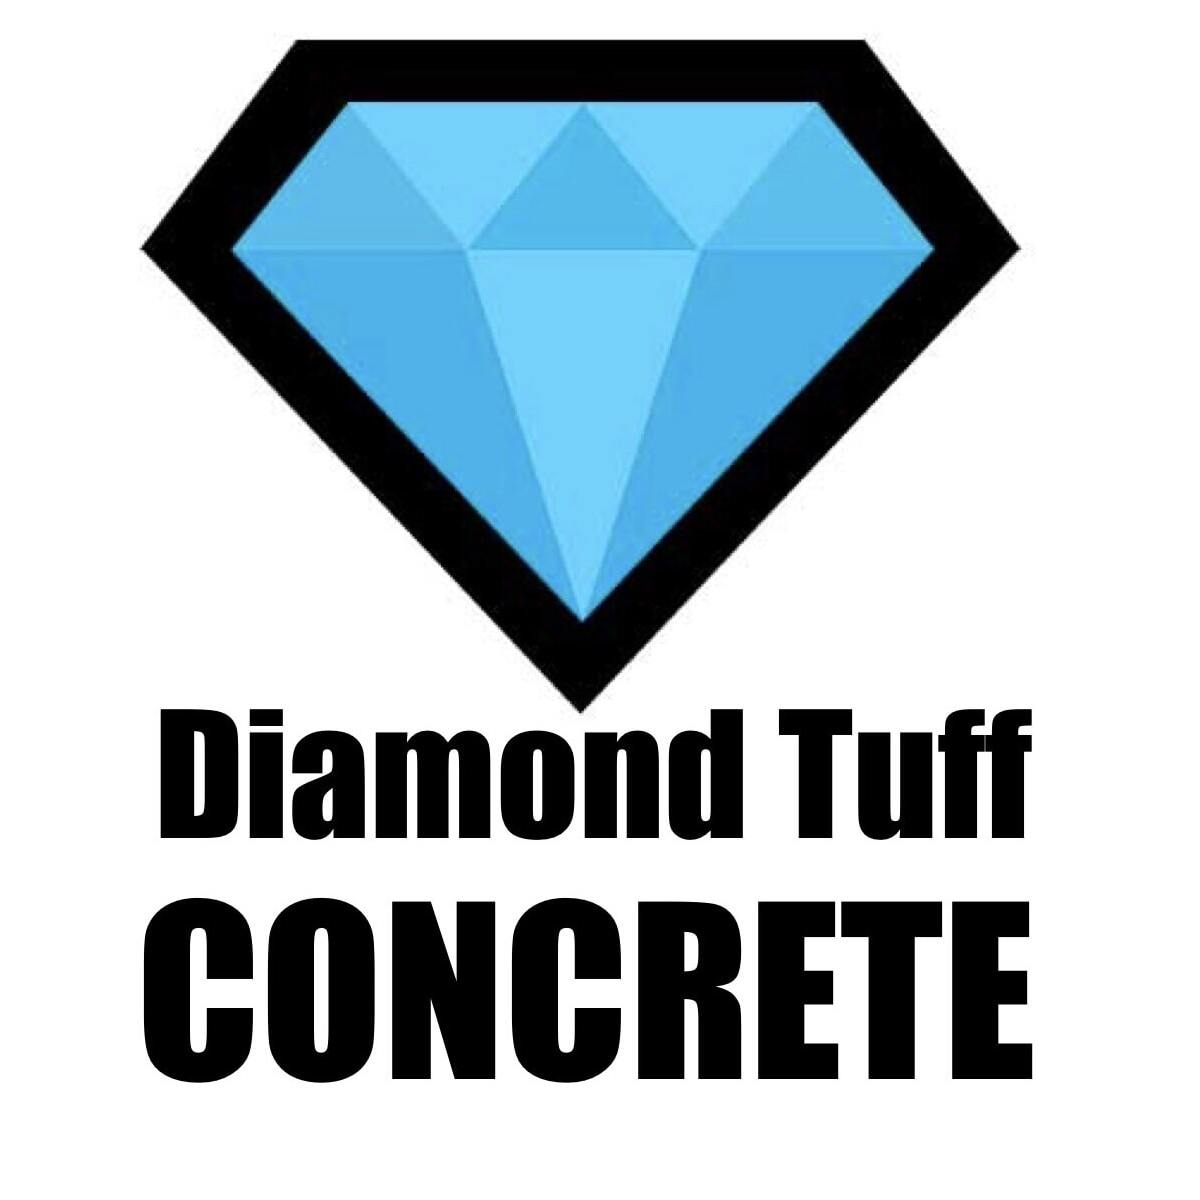 Diamond Tuff Concrete